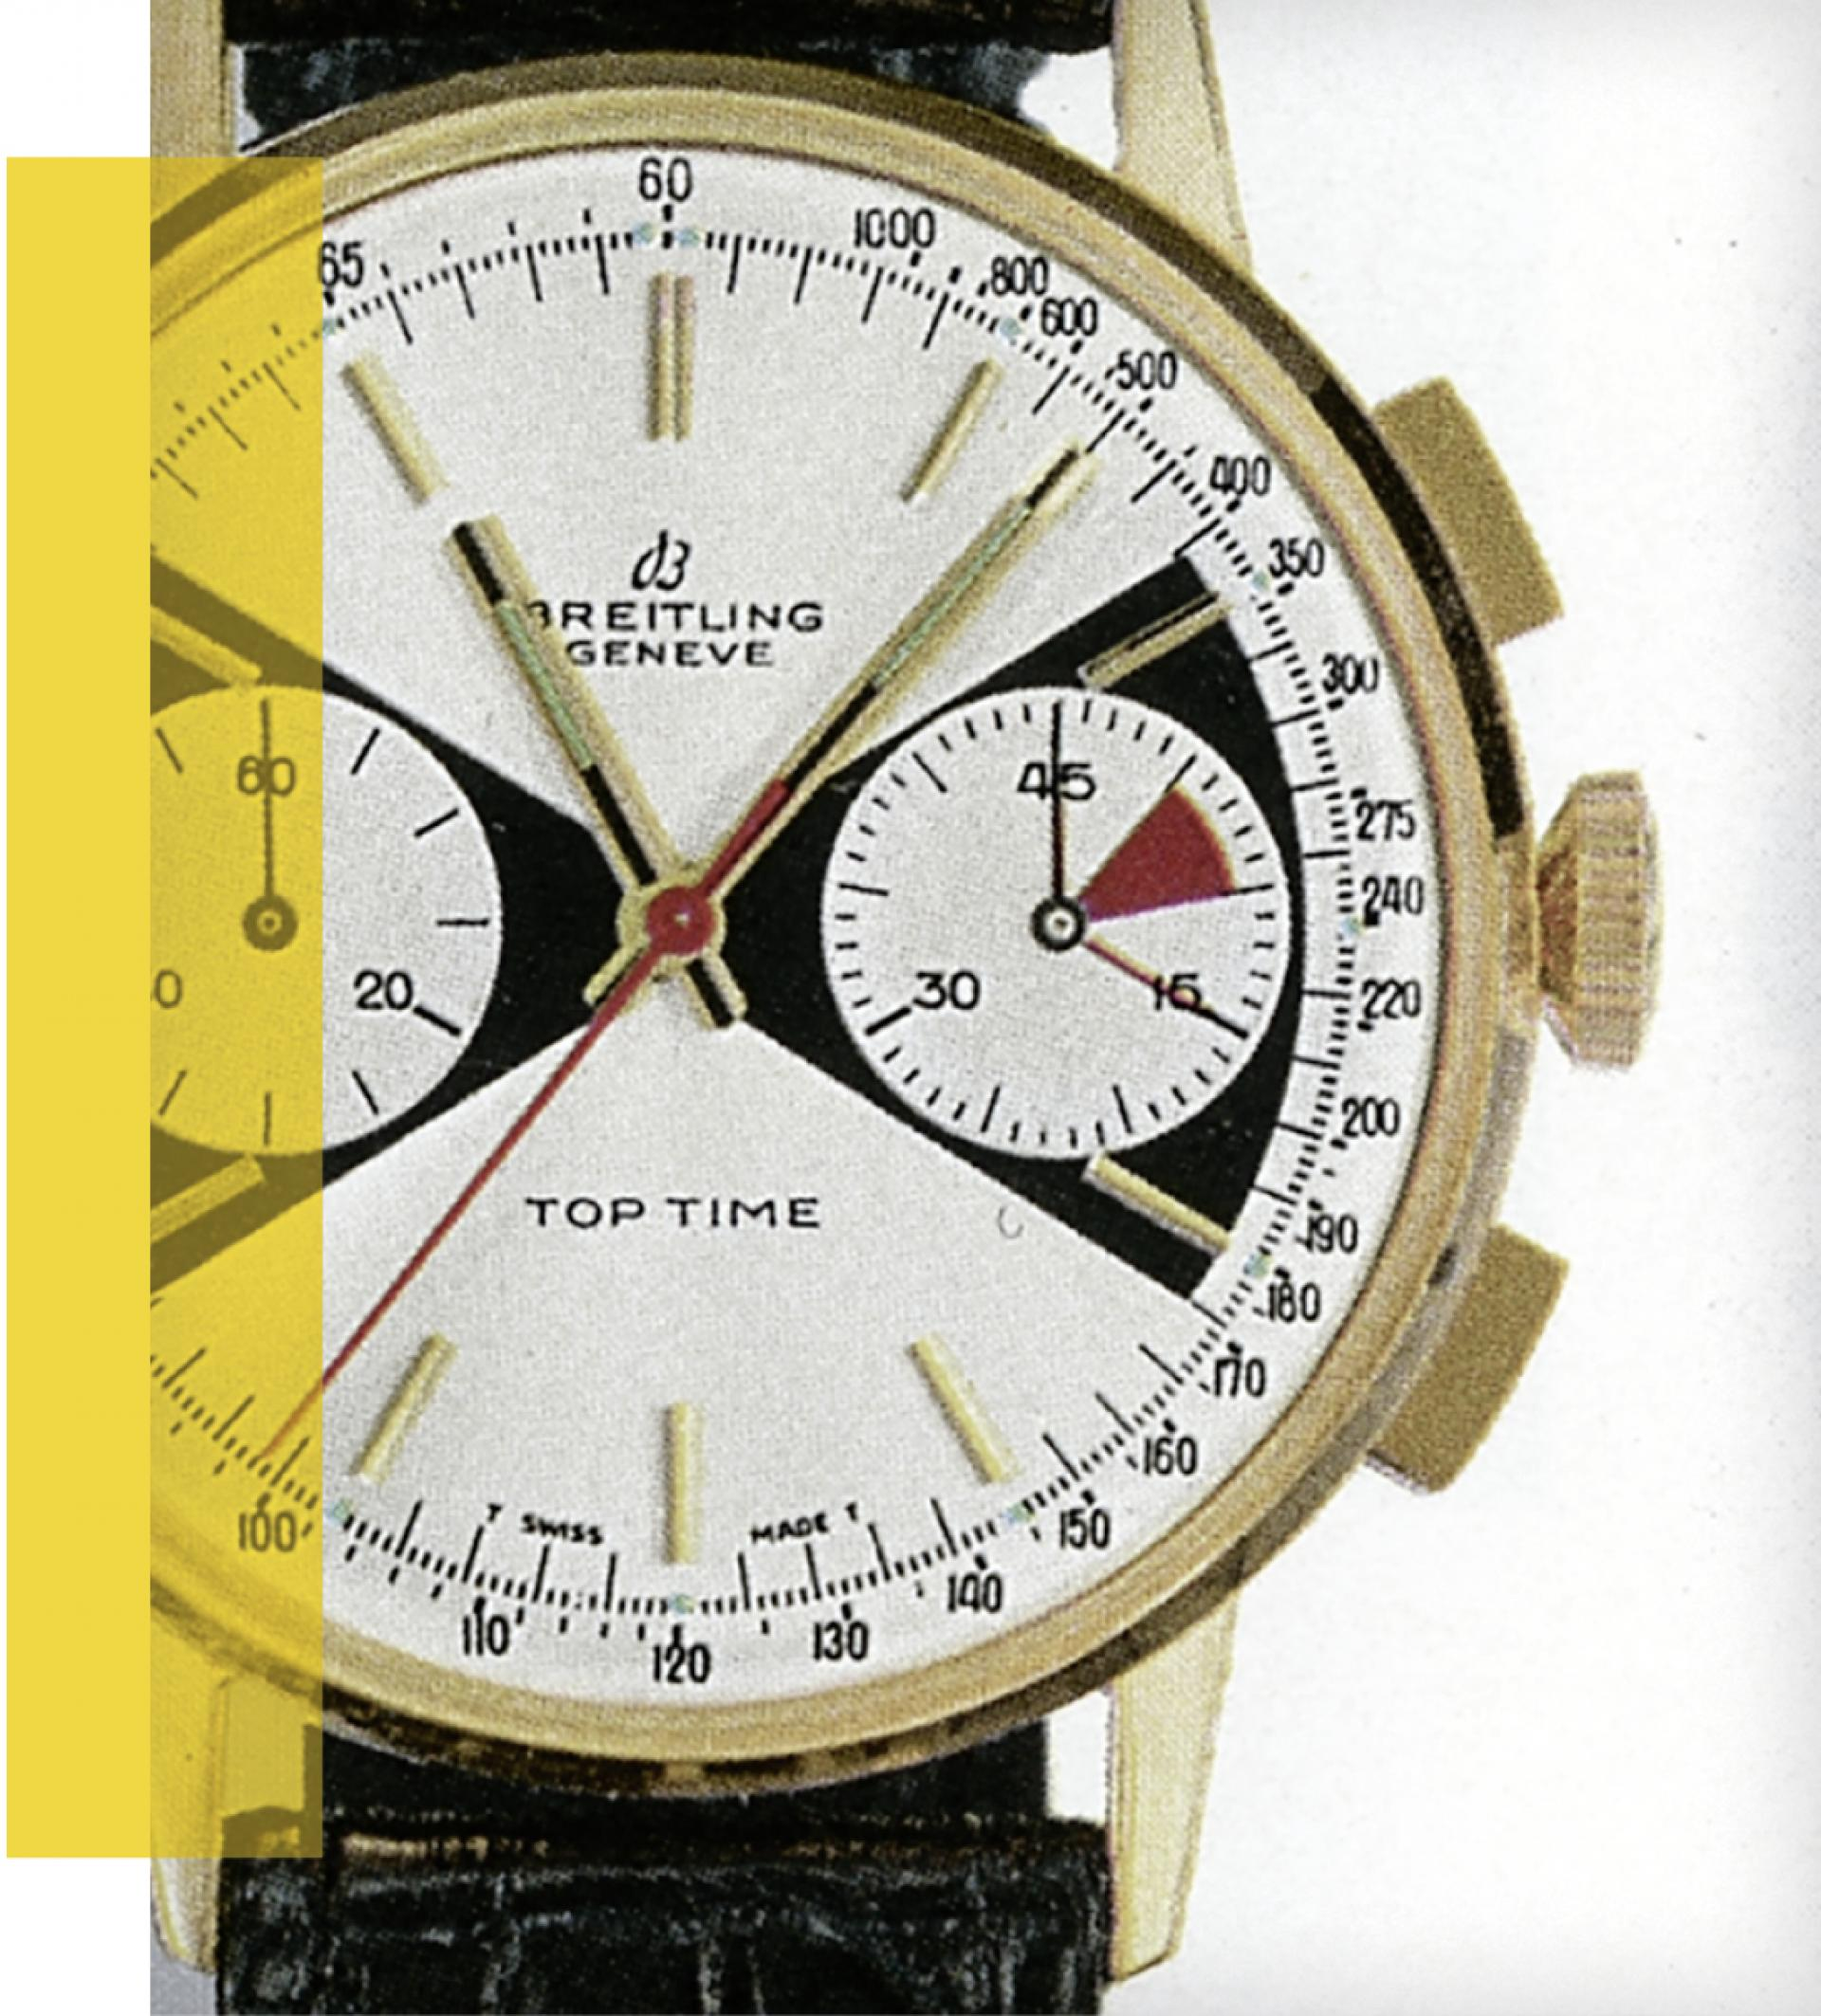 Breitling Top Time Limited Watch of the Week